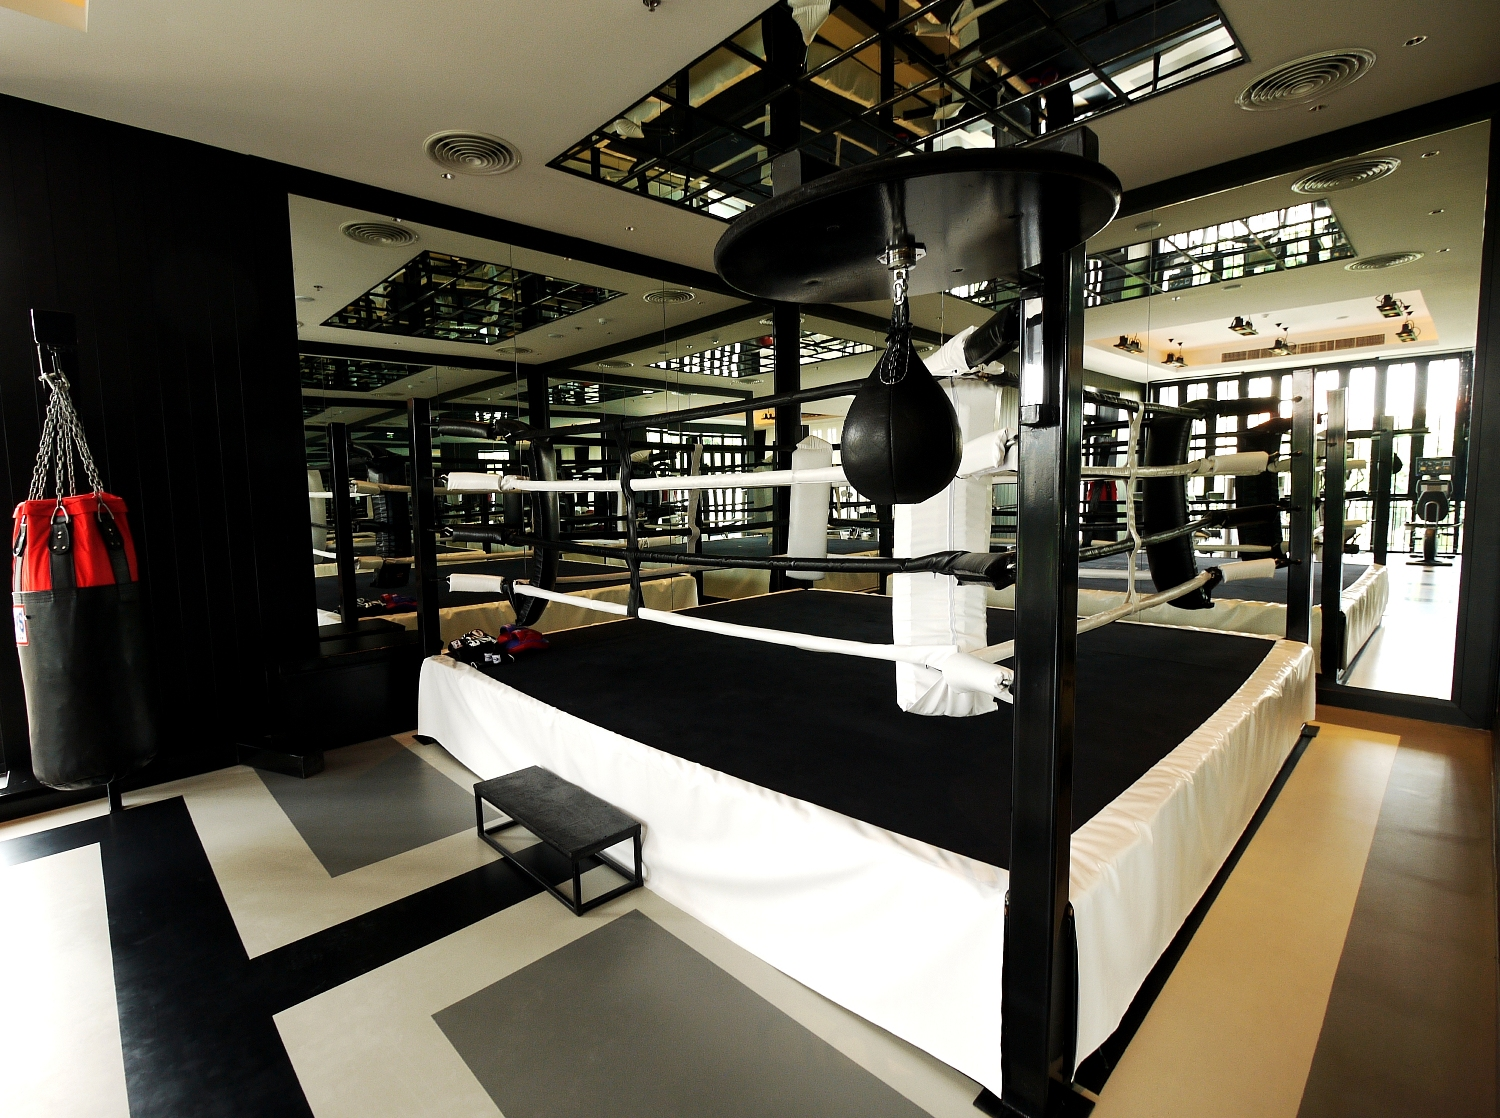 Gym - Muay Thai Boxing ring